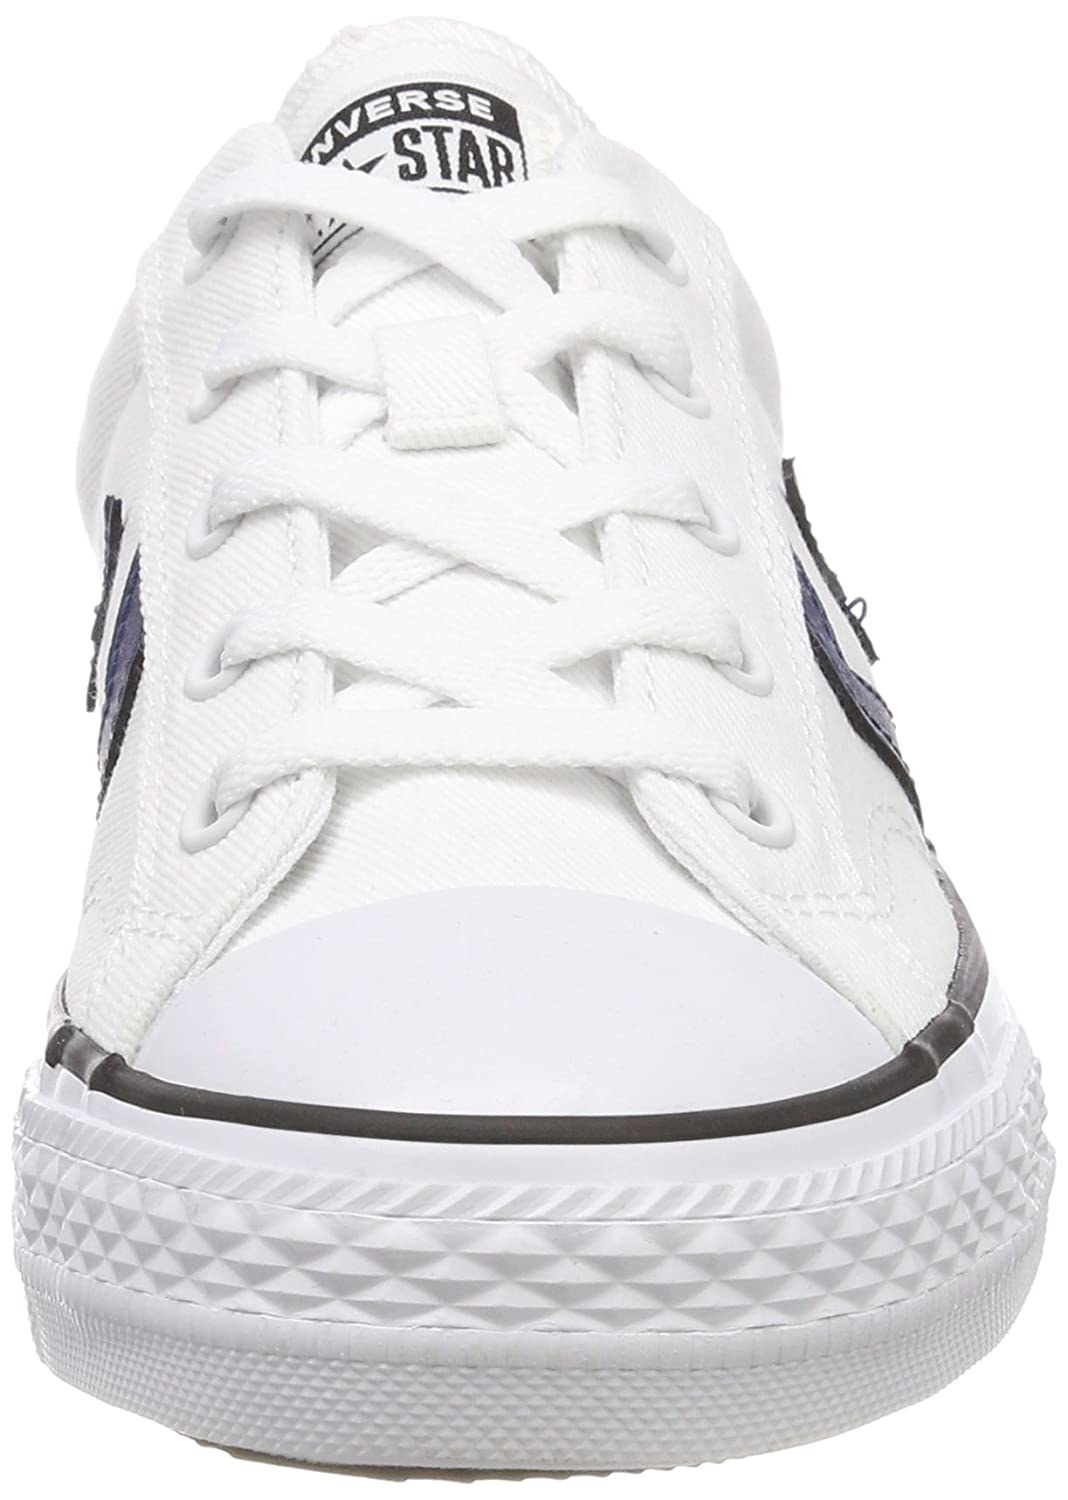 Mixte Adulte Star 160558cSneakers Converse Player Basses ZOPkTiuwXl